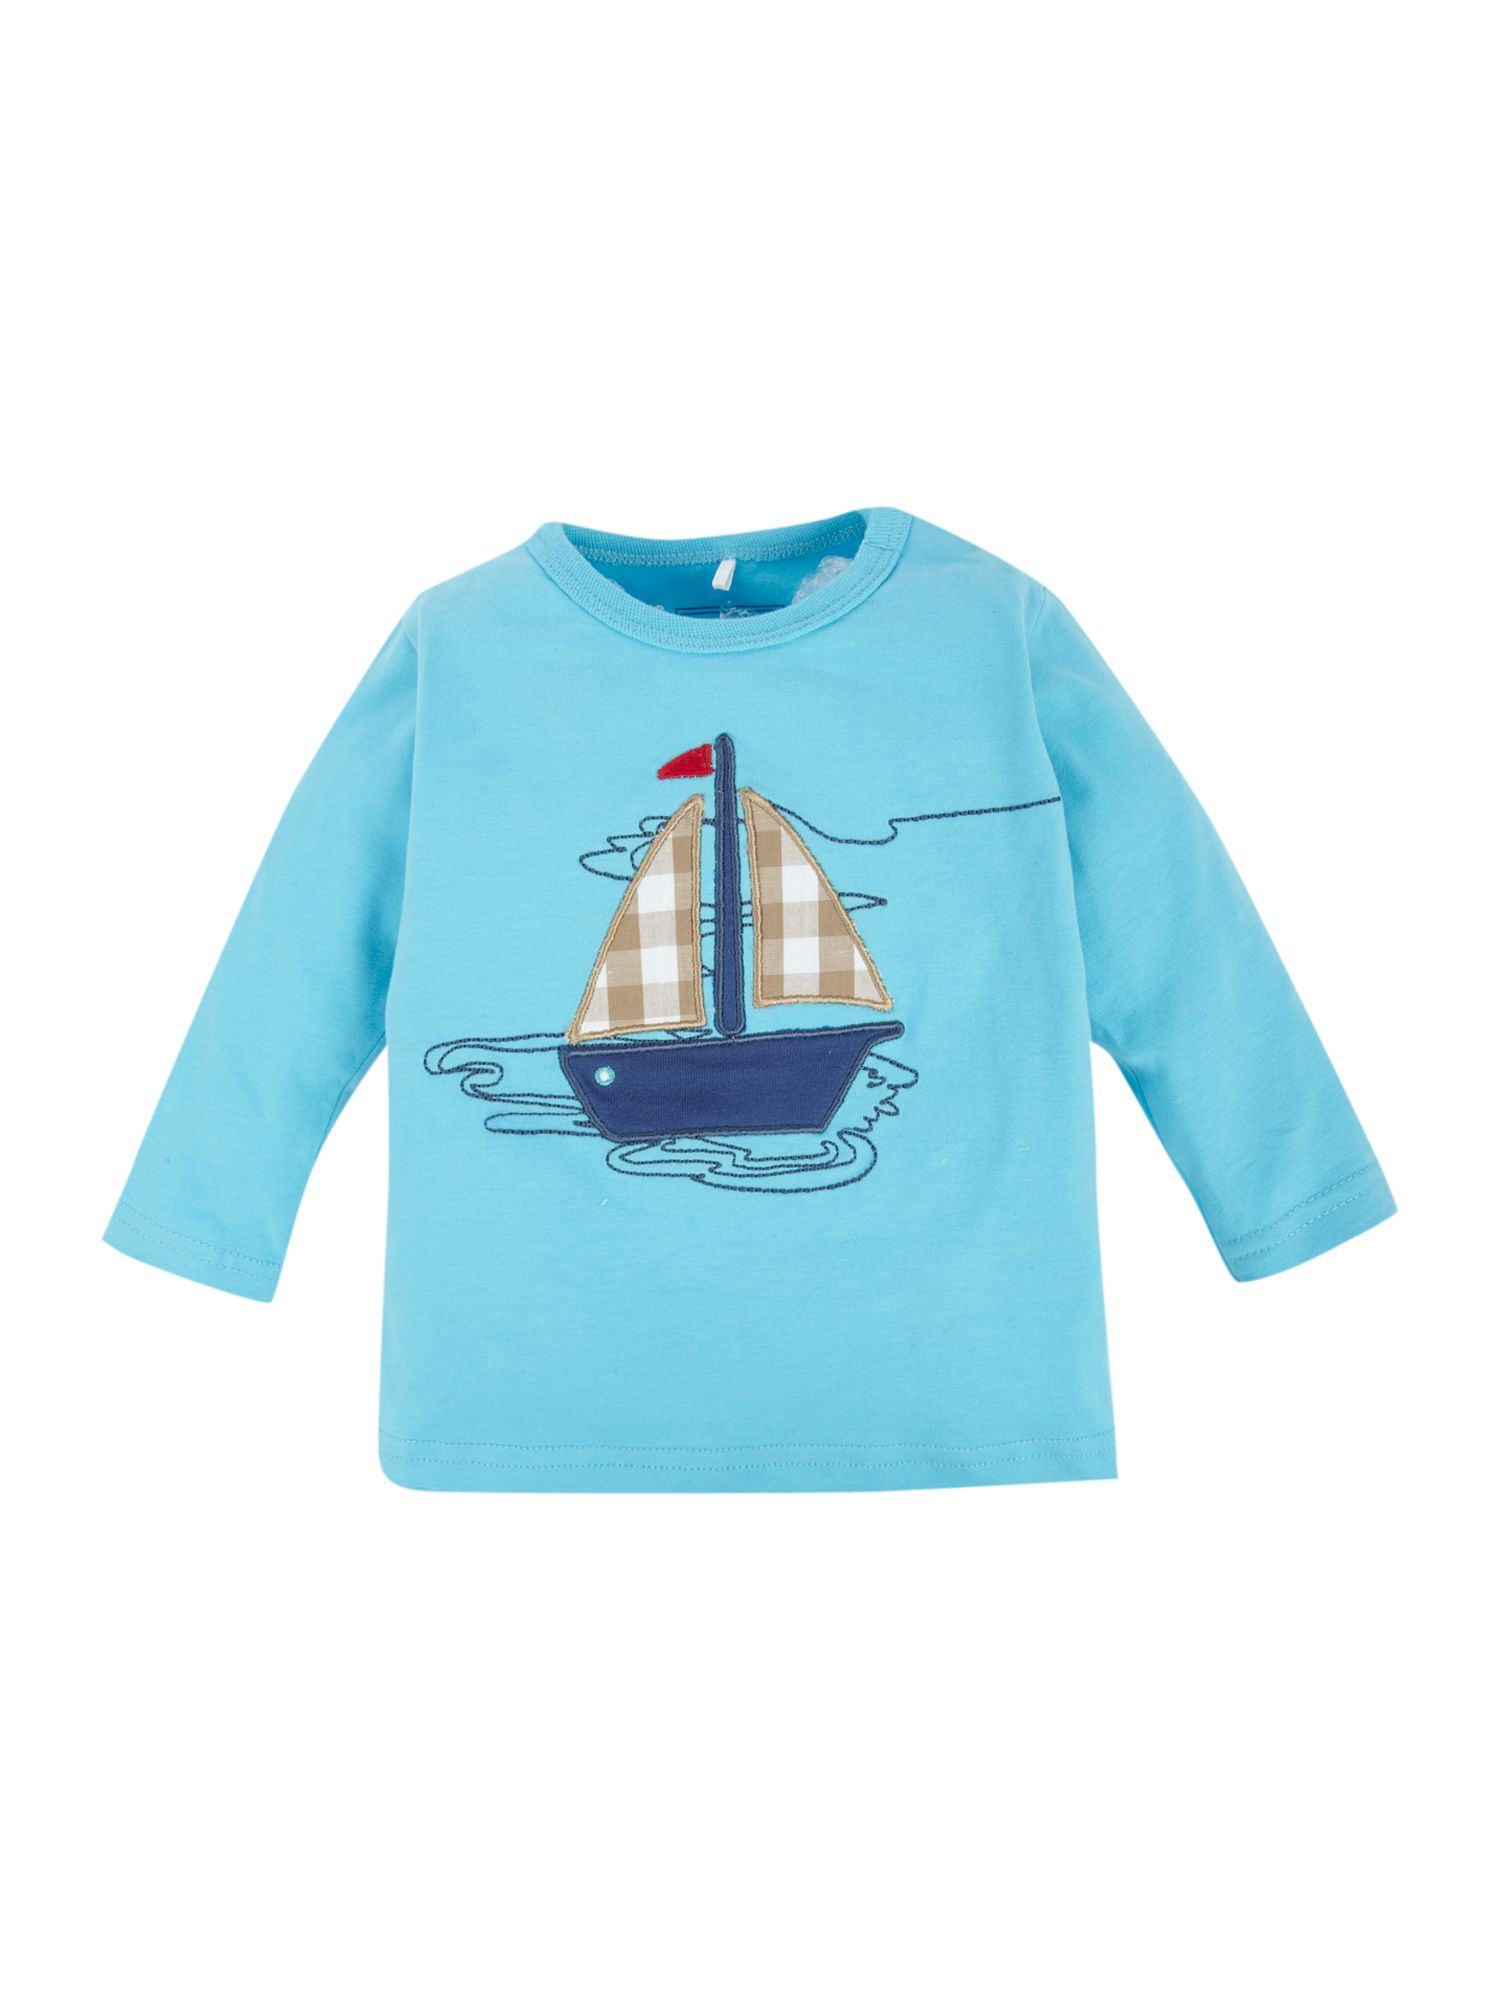 name it Long-sleeved boat applique T-shirt - Turquoise product image